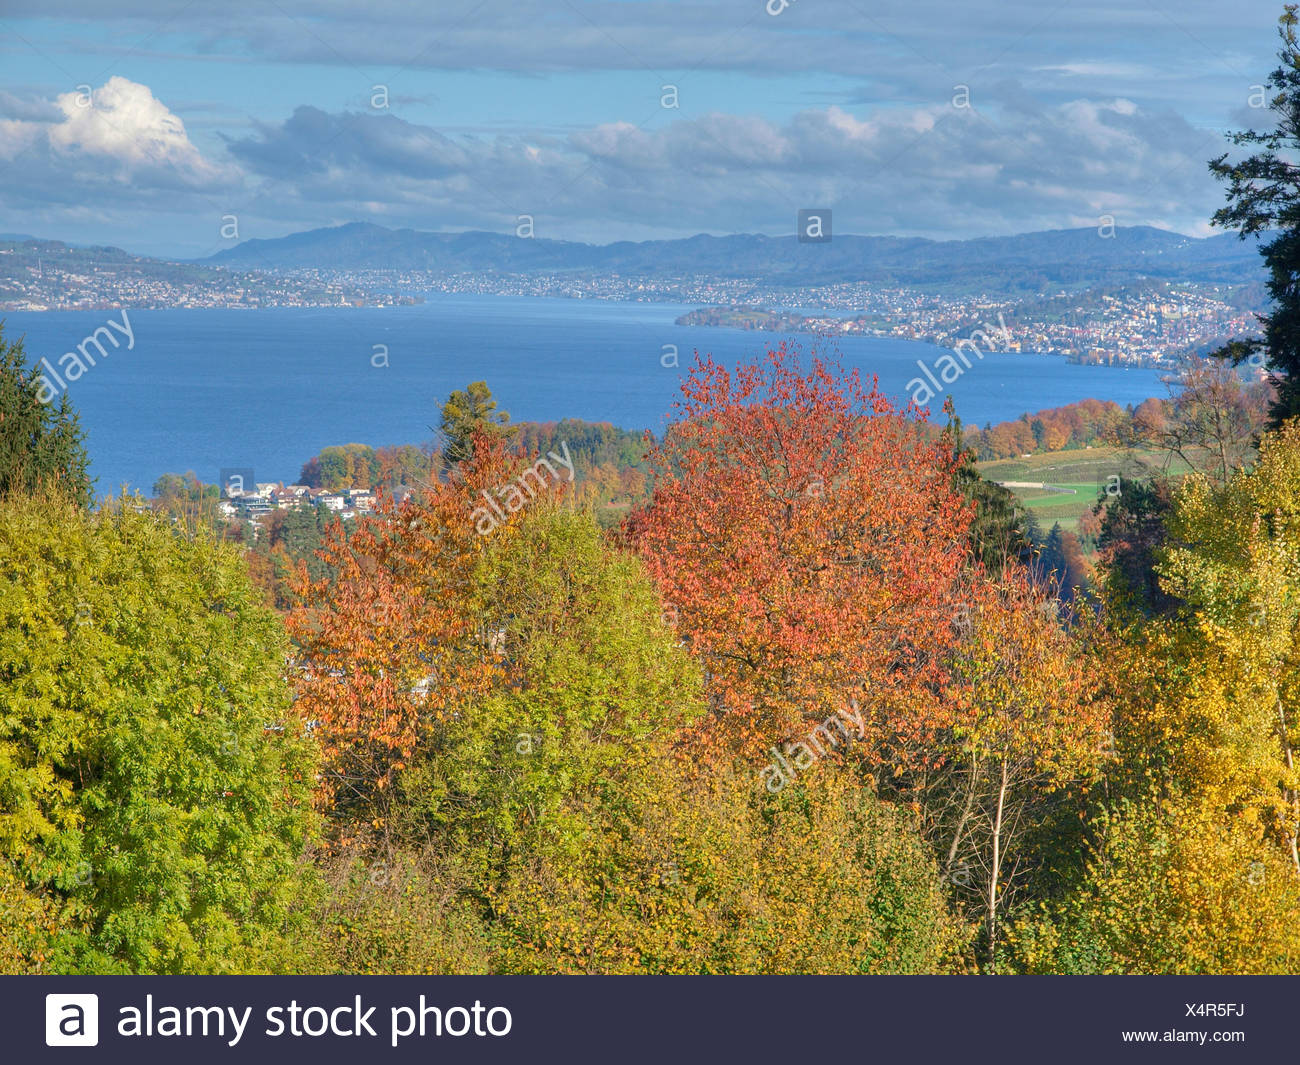 Trees, leaves, autumn, canton Zurich, Switzerland, autumn trees, colors, leaves, Wadenswil - Stock Image